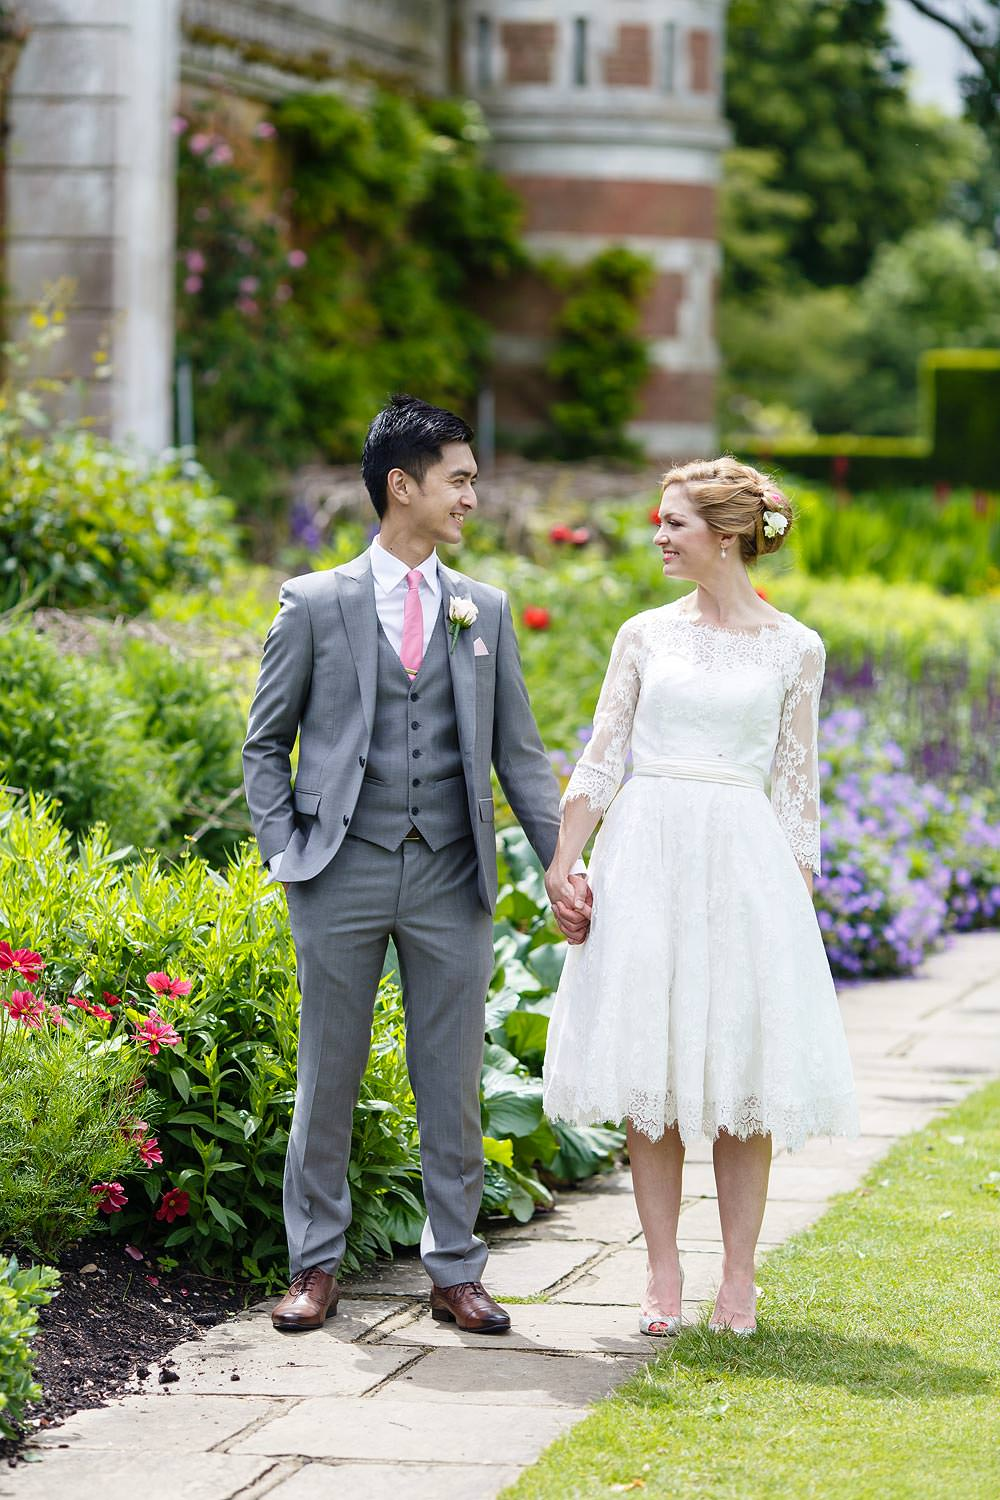 Amazing photos at Cliven House, the bride and groom gaze at each other